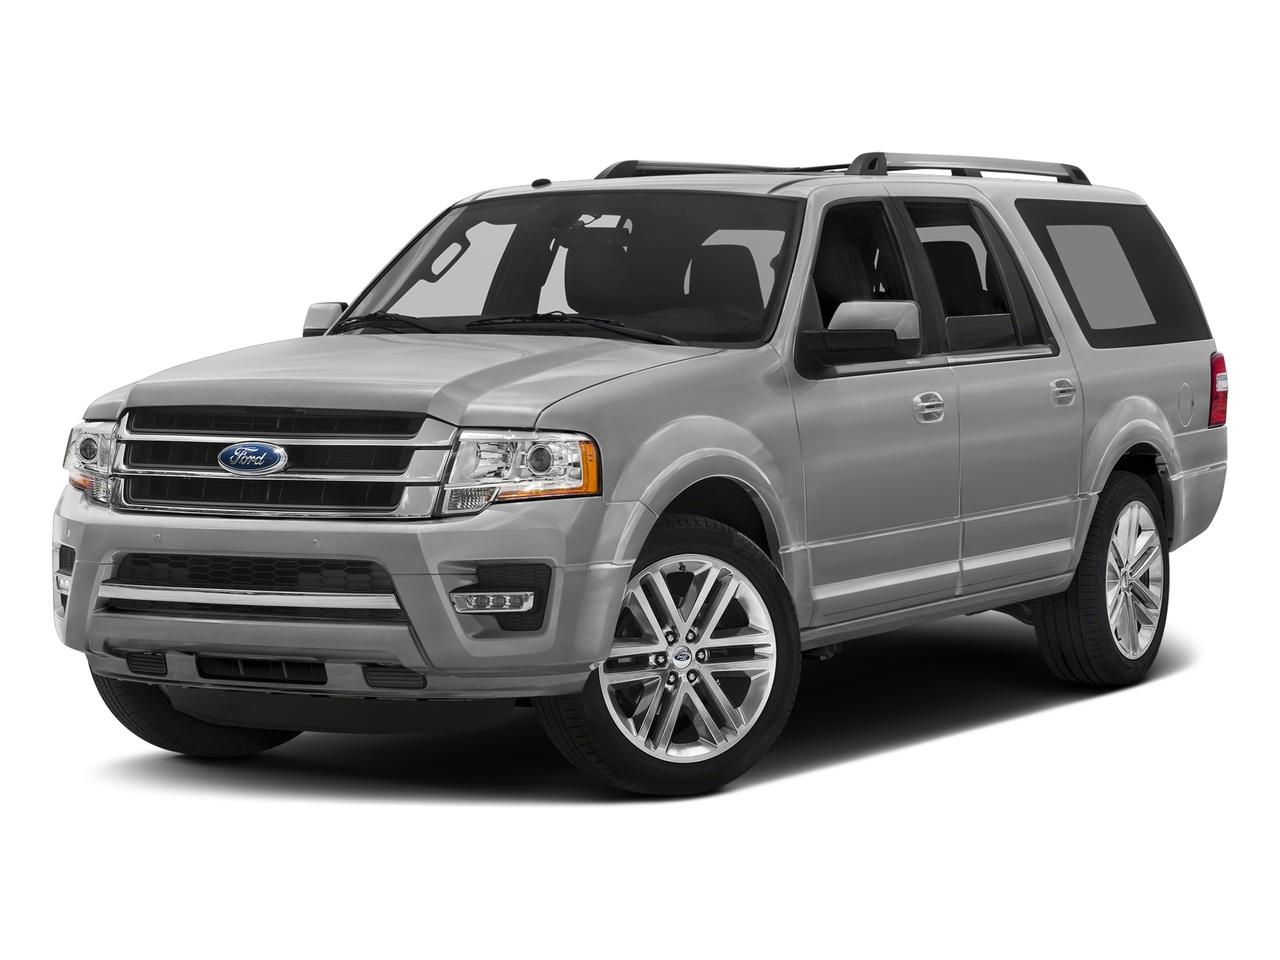 2017 Ford Expedition EL Vehicle Photo in Independence, MO 64055